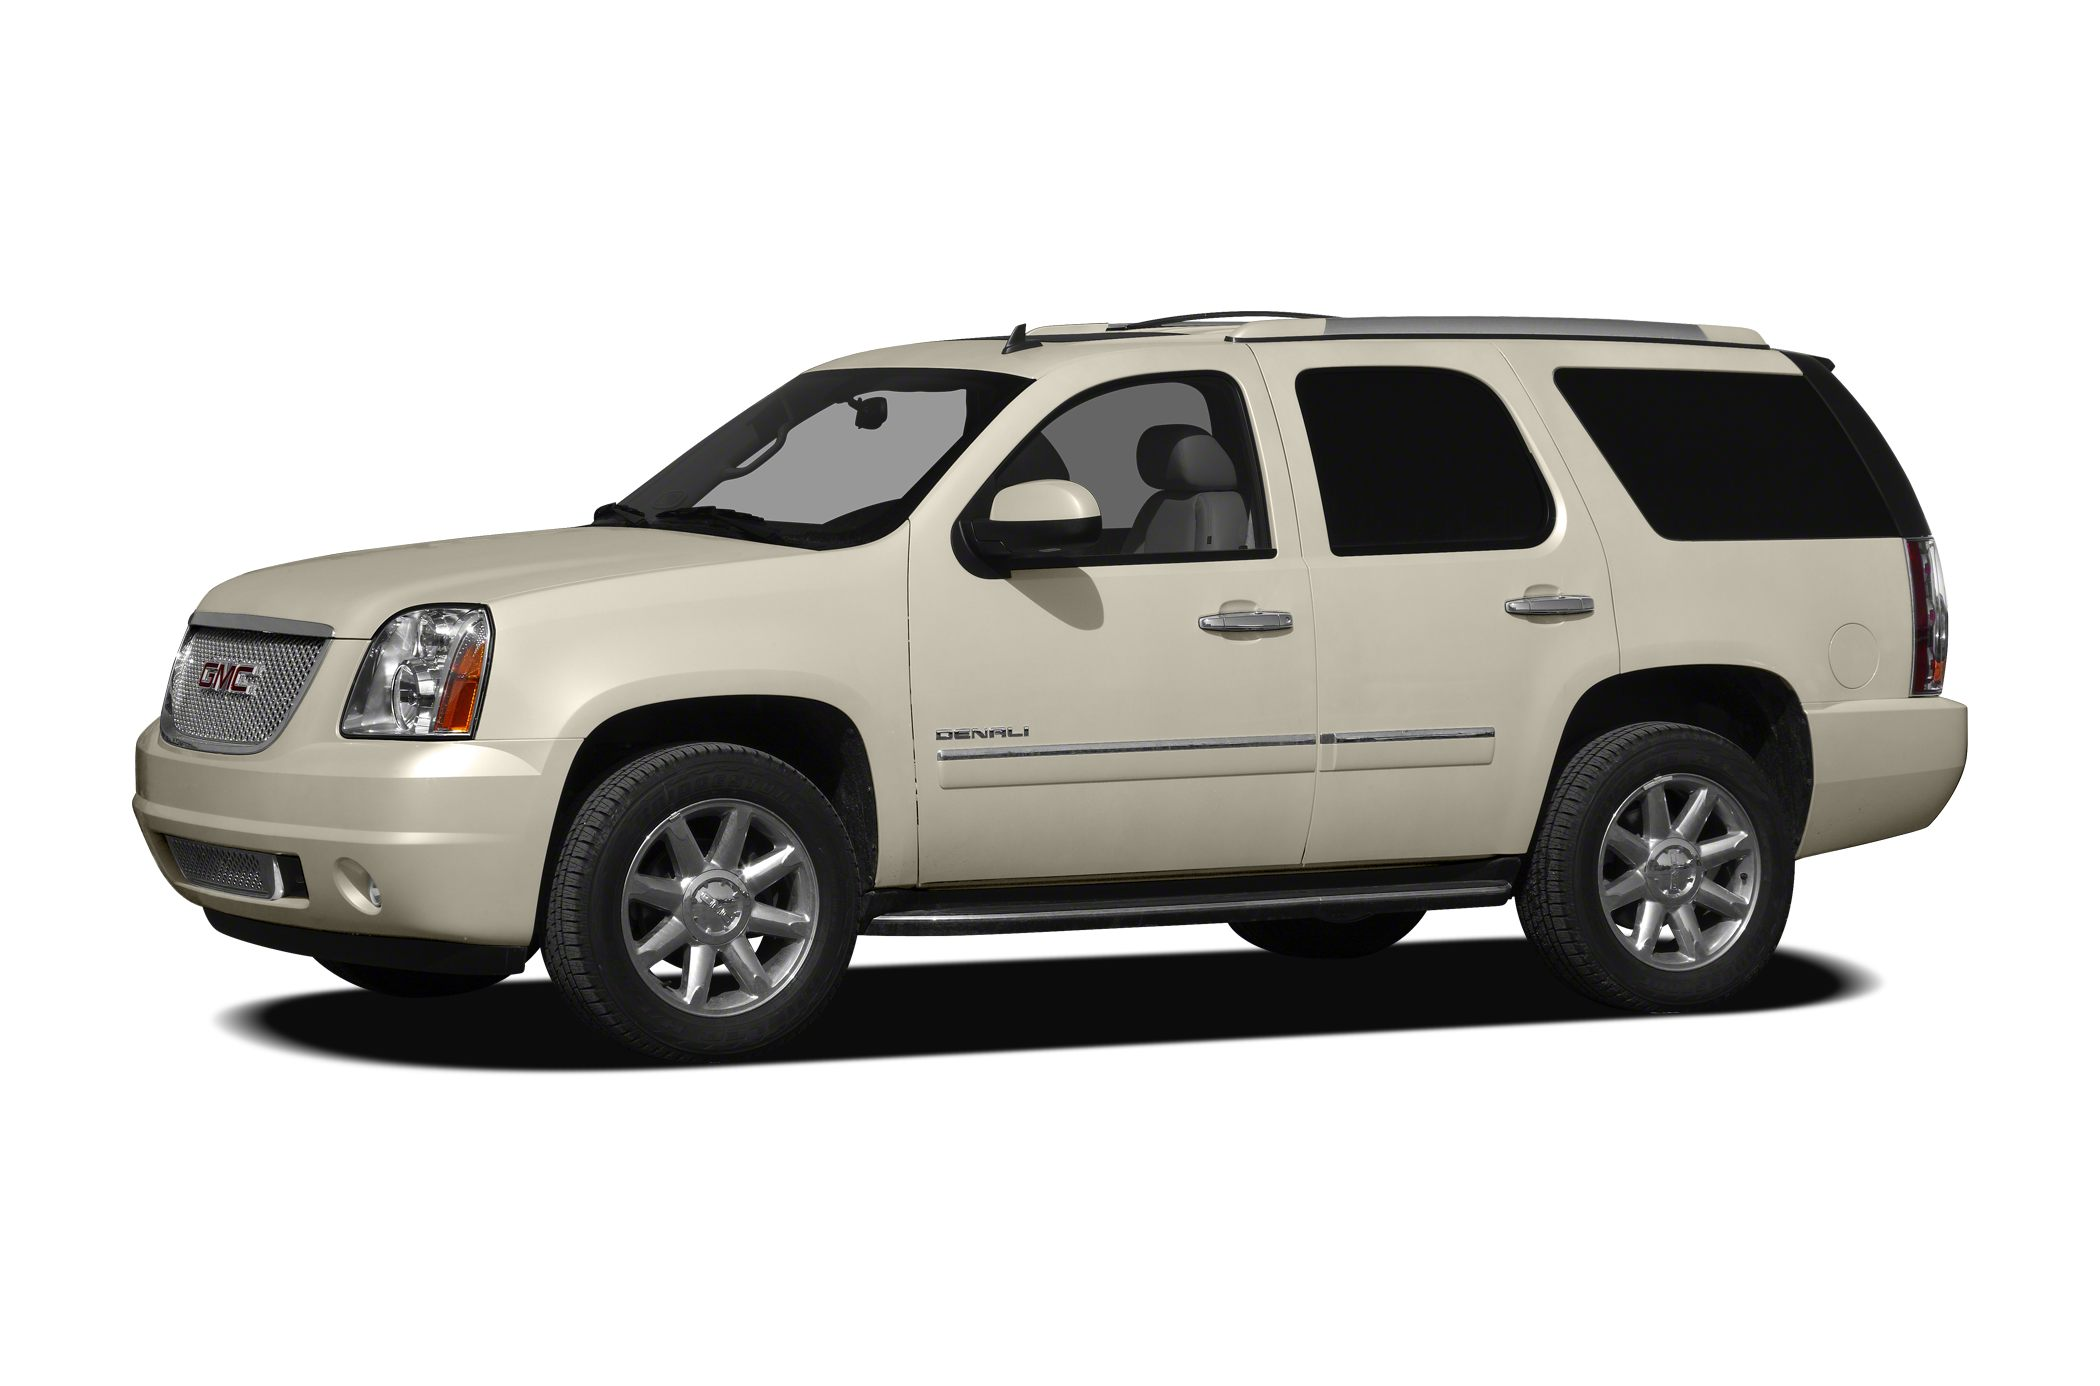 2013 GMC Yukon Denali SUV for sale in Kilgore for $40,335 with 47,092 miles.